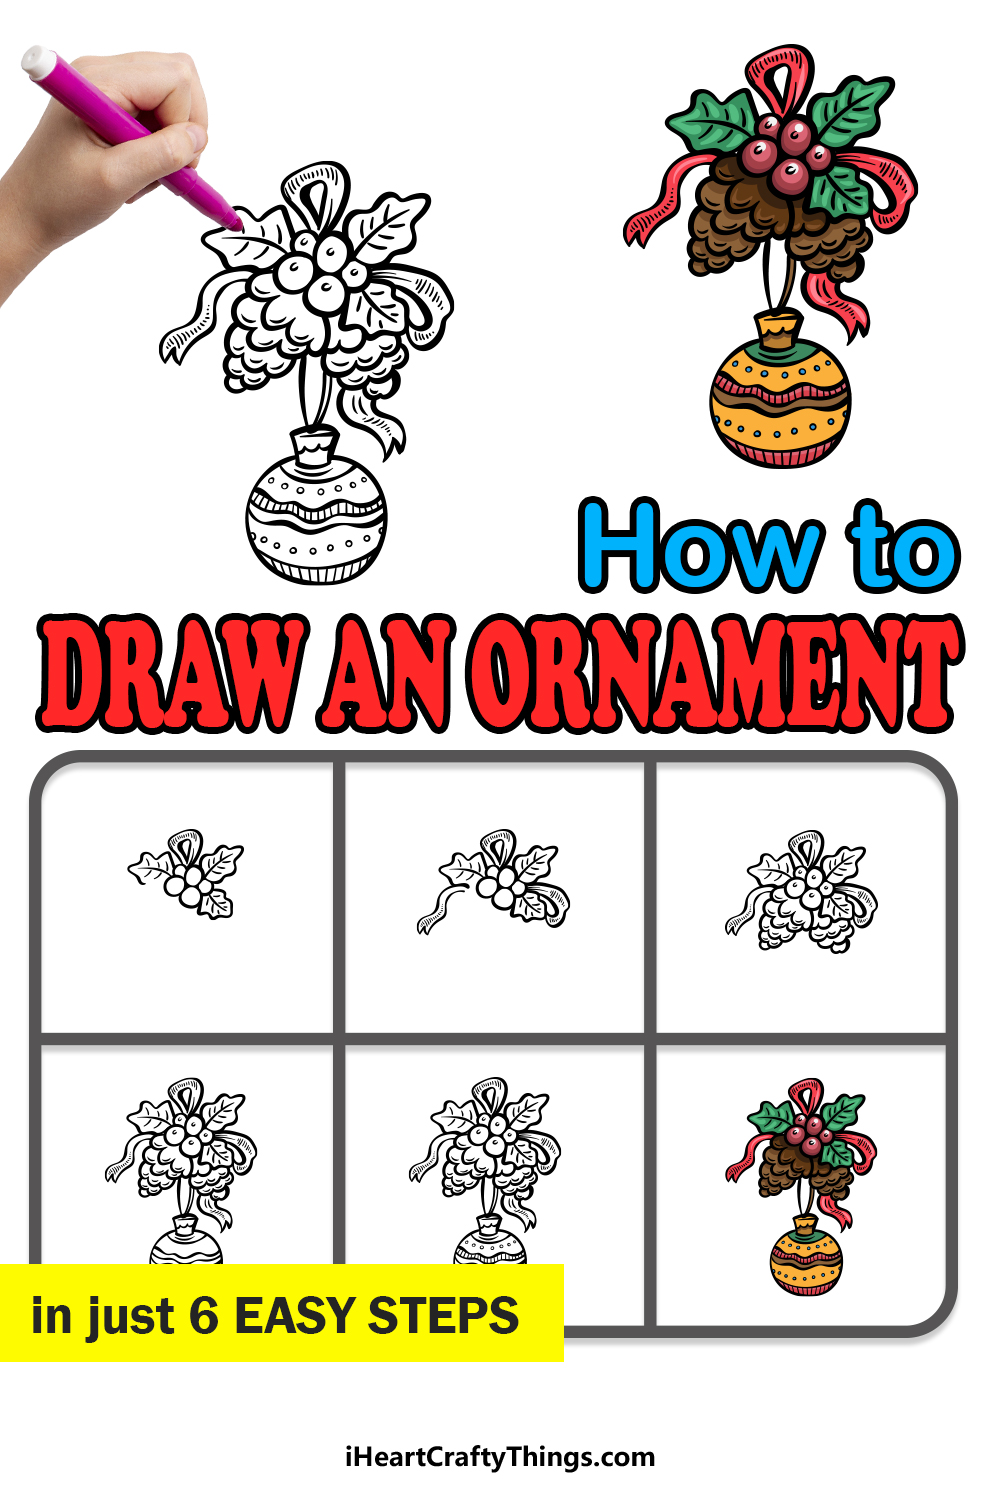 how to draw an ornament in 6 easy steps